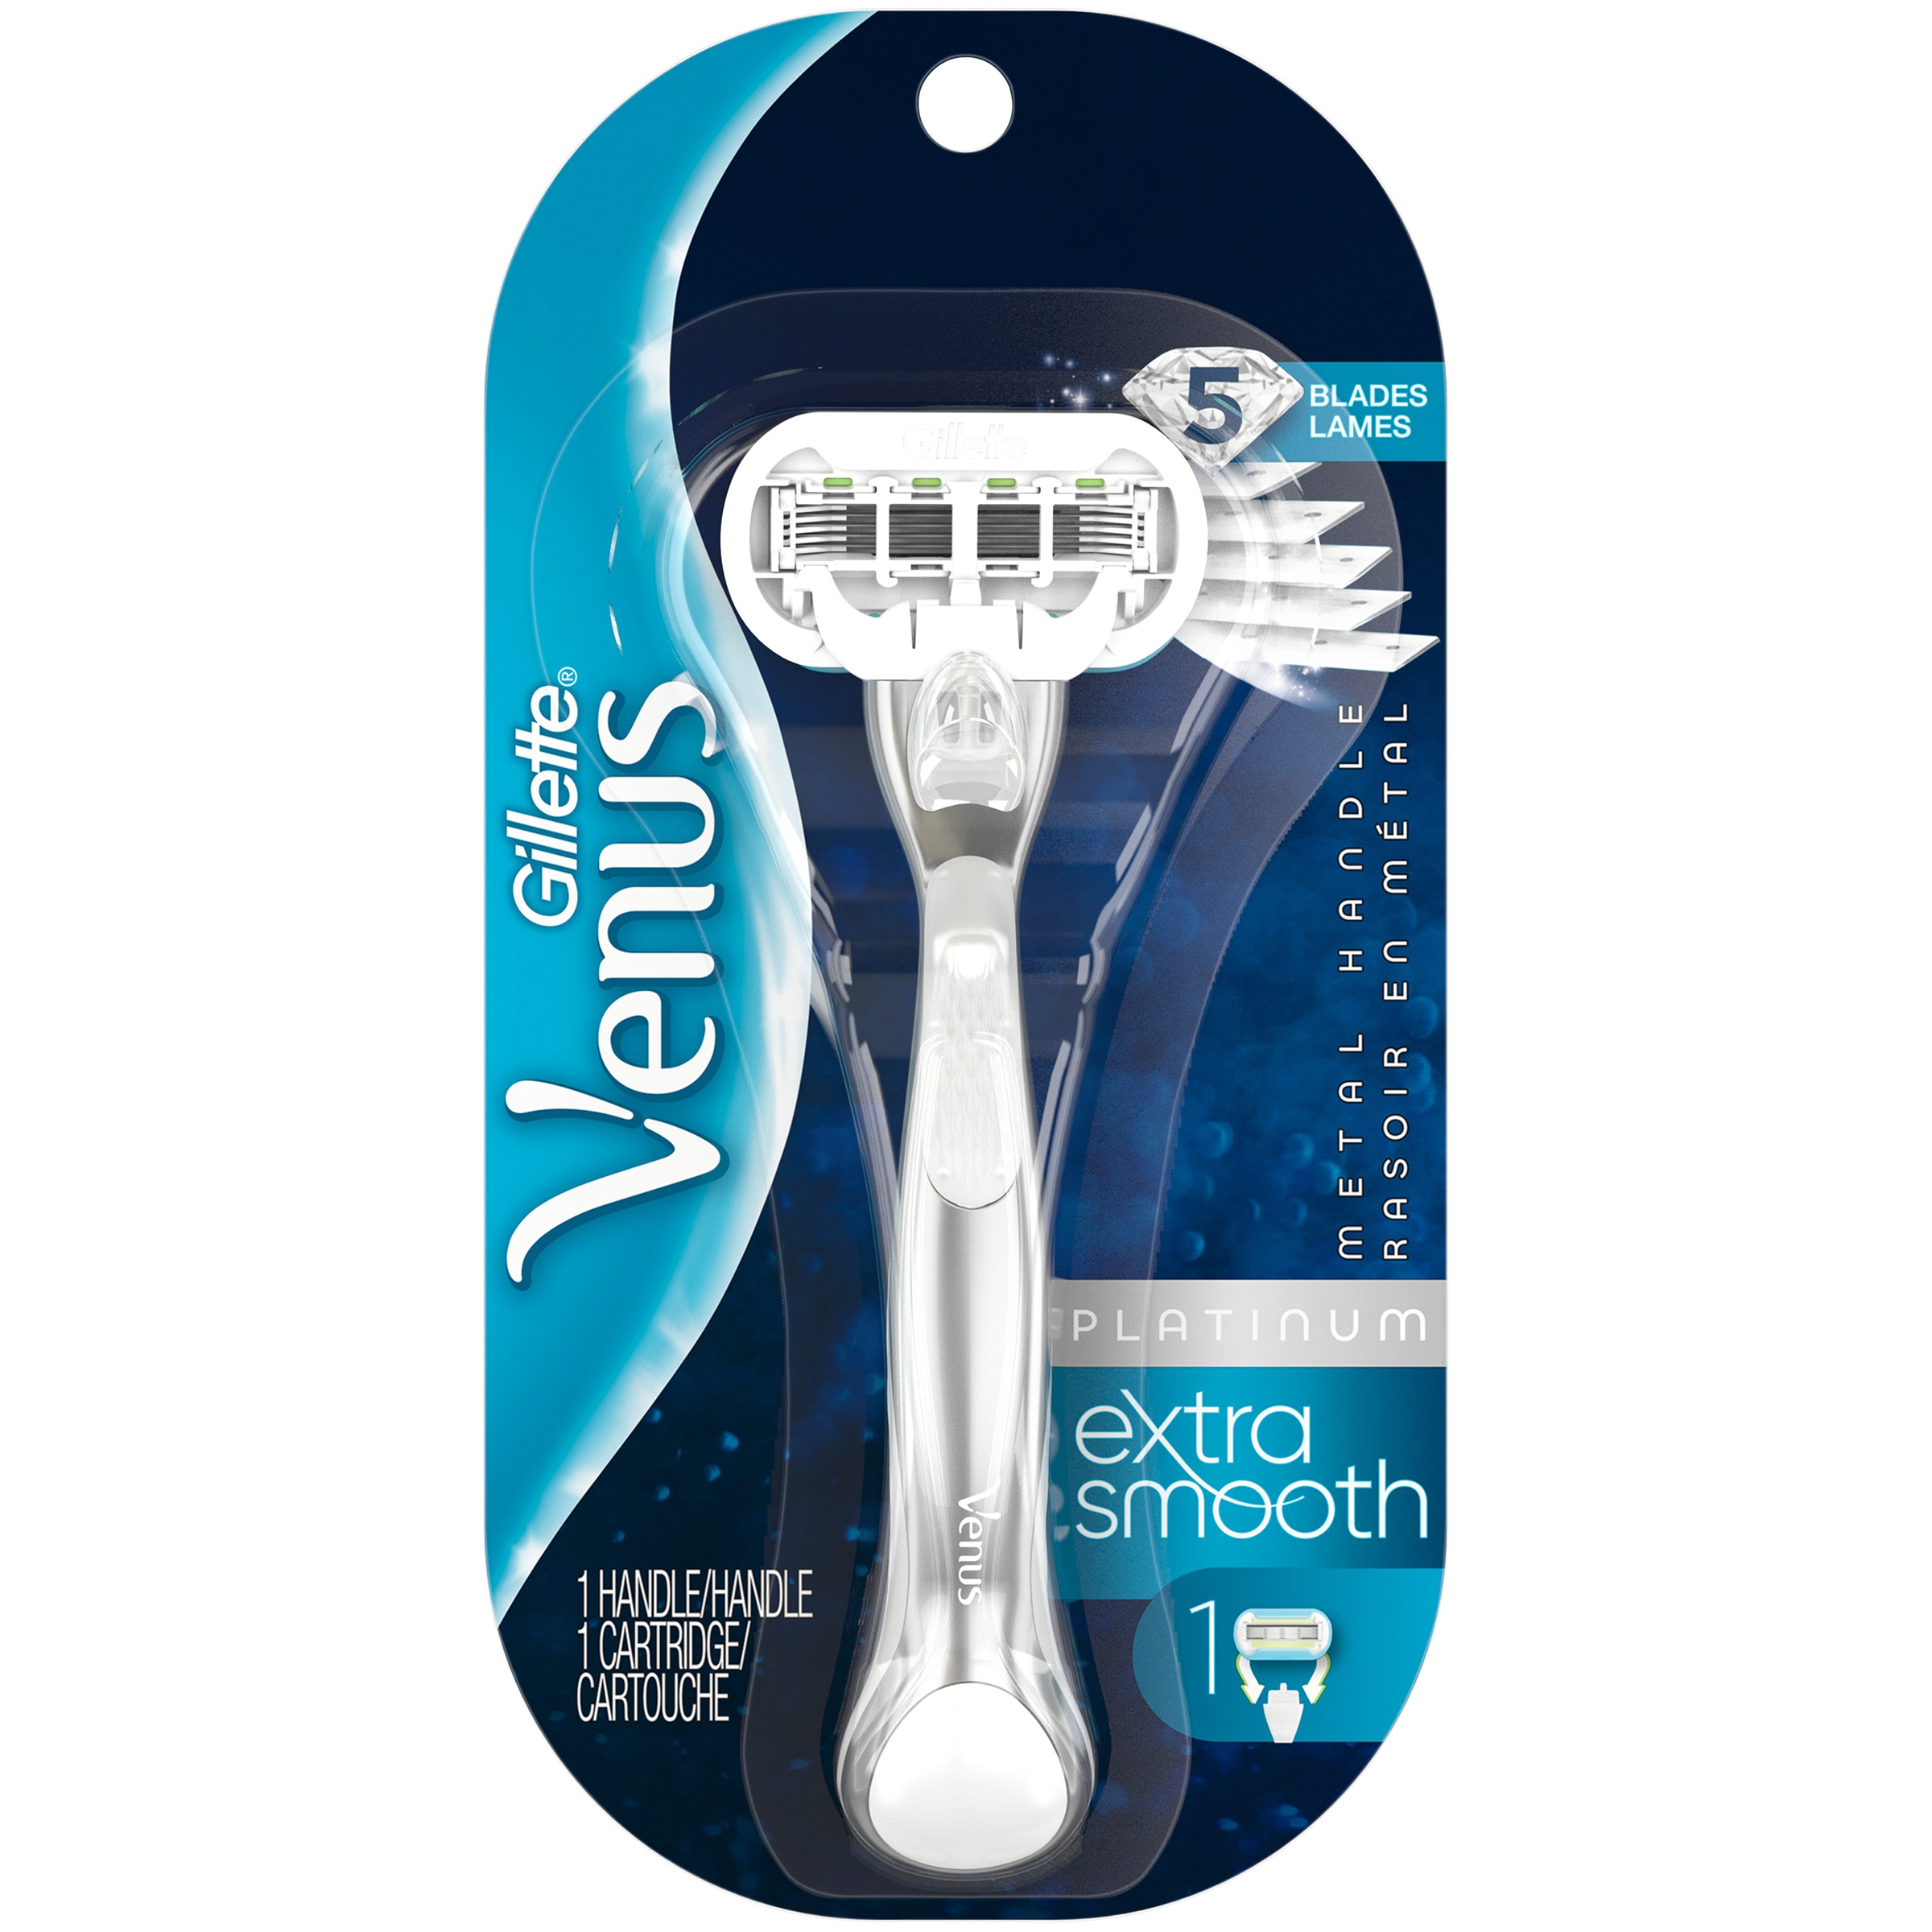 Gillette Venus Platinum Extra Smooth Metal Handle Women's Razor, 1 Handle plus 1 Refill